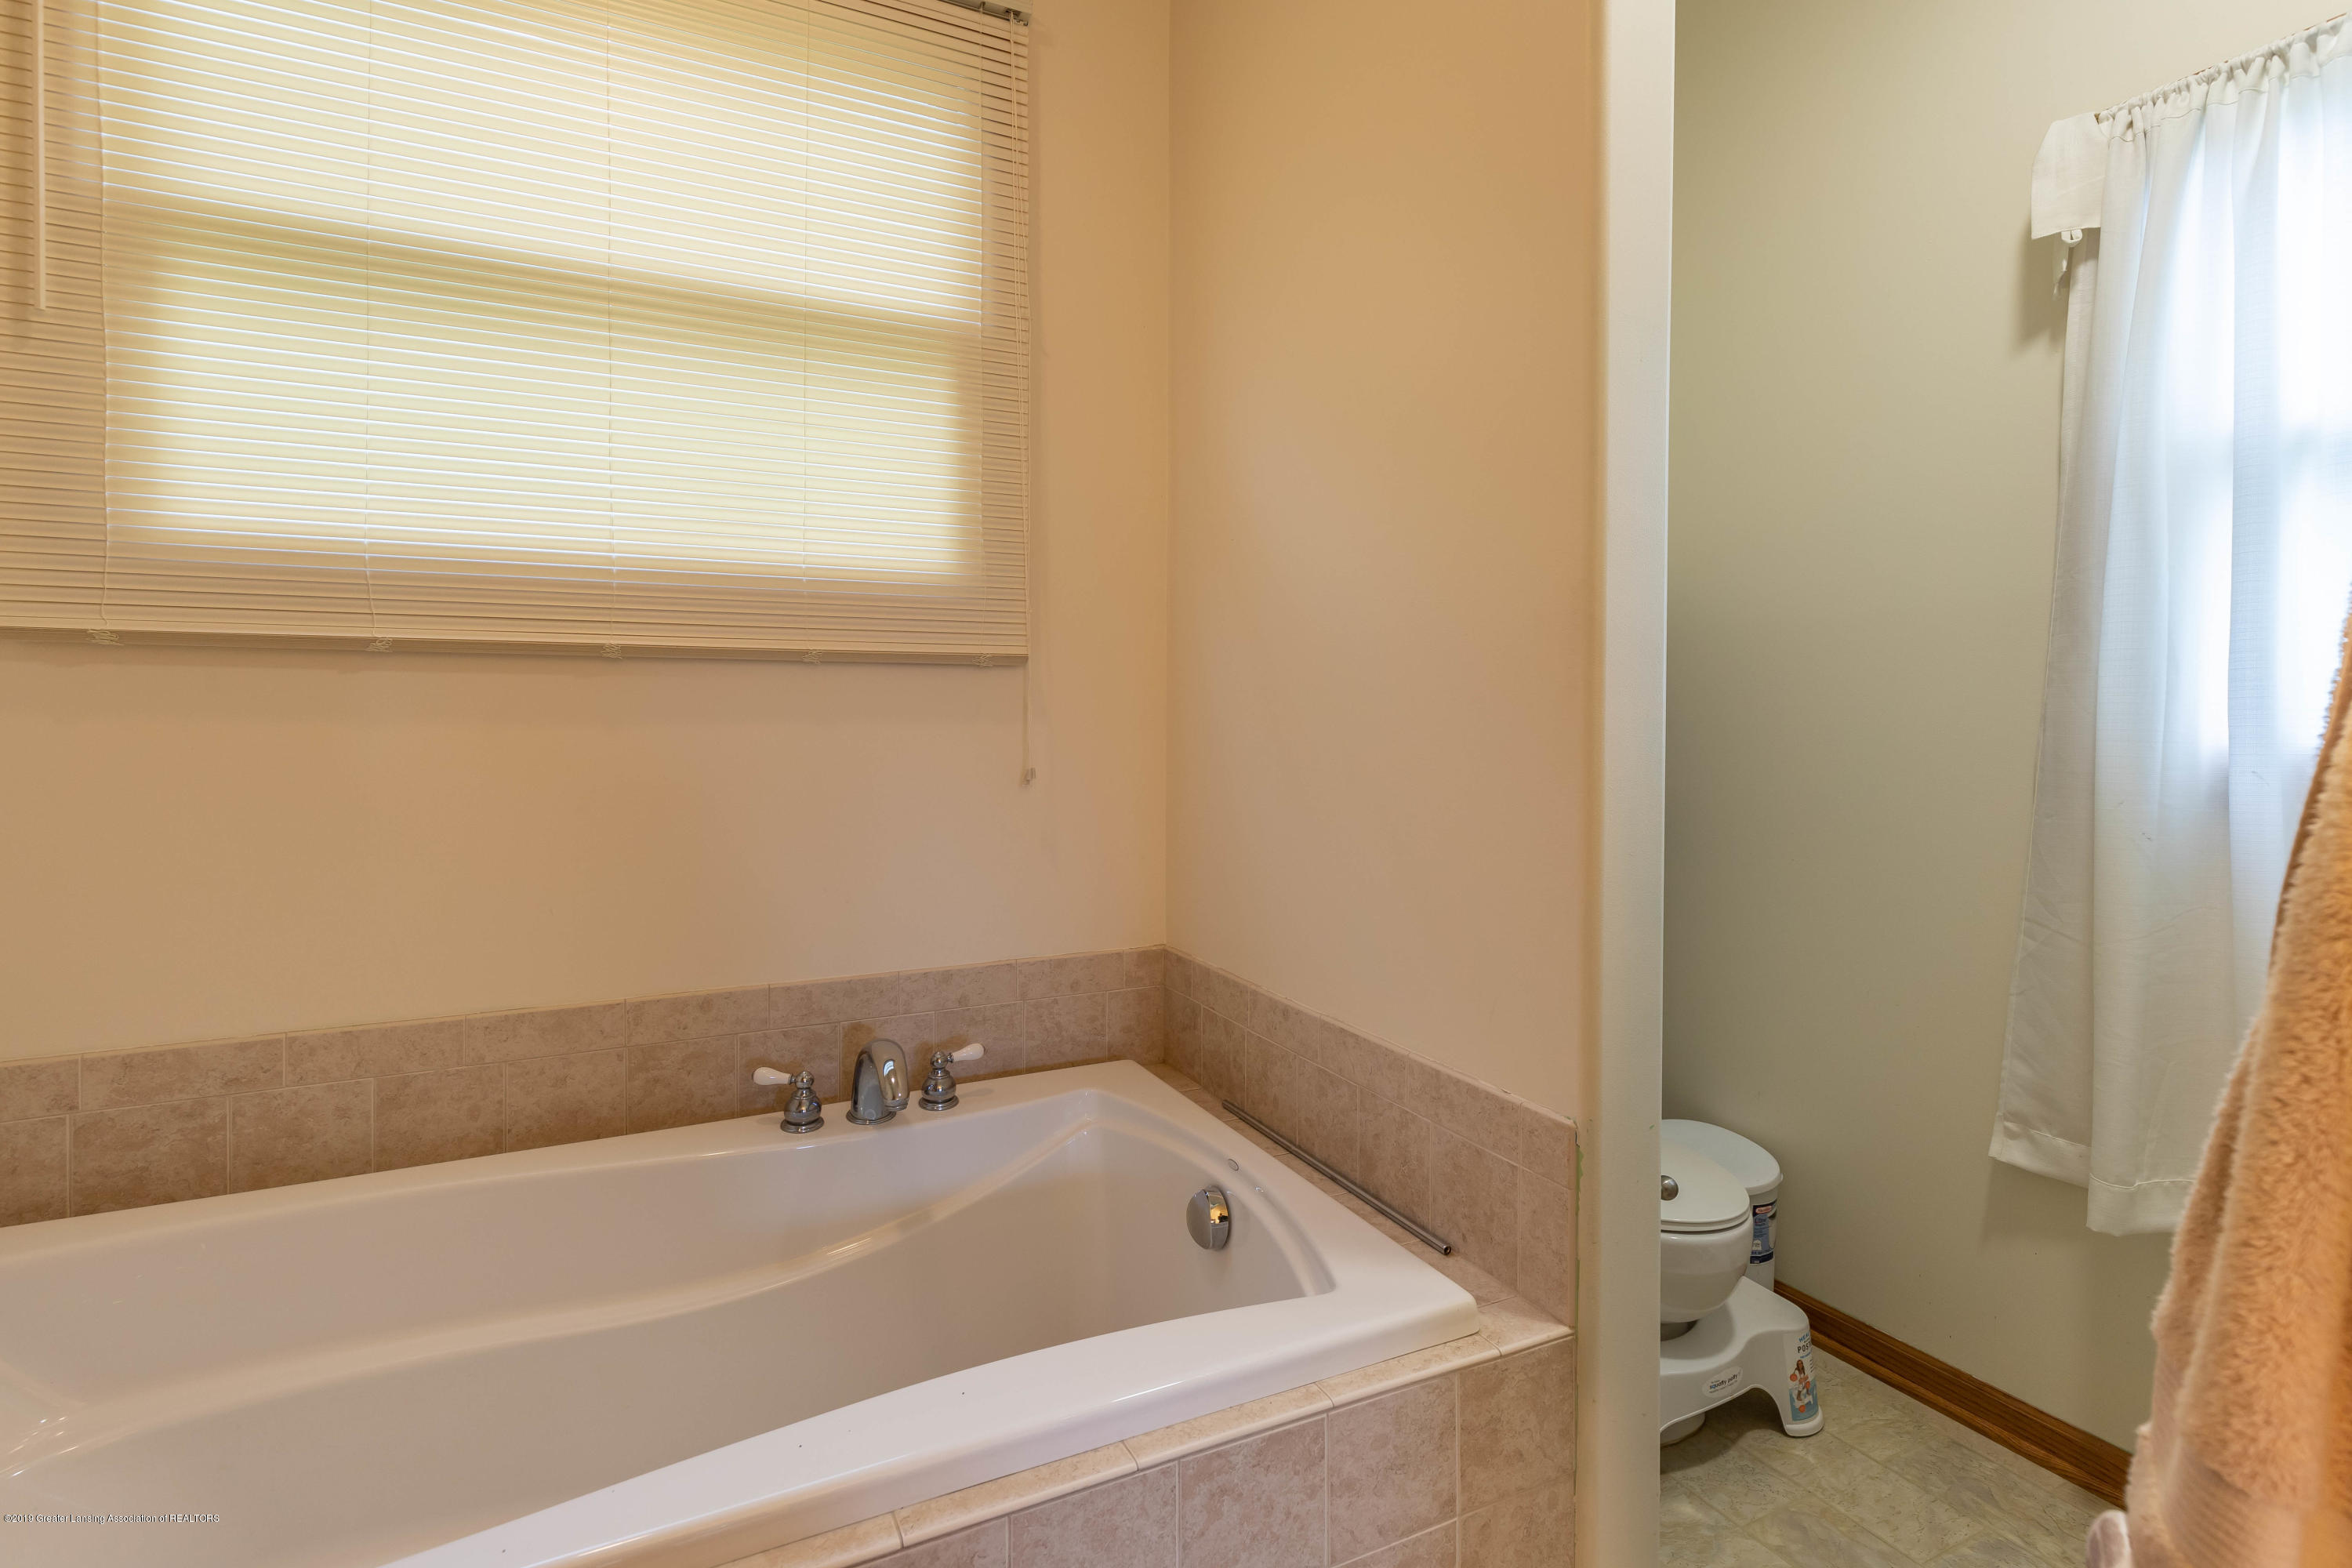 612 Hastay Blvd - hastaybed1bath (1 of 1) - 18